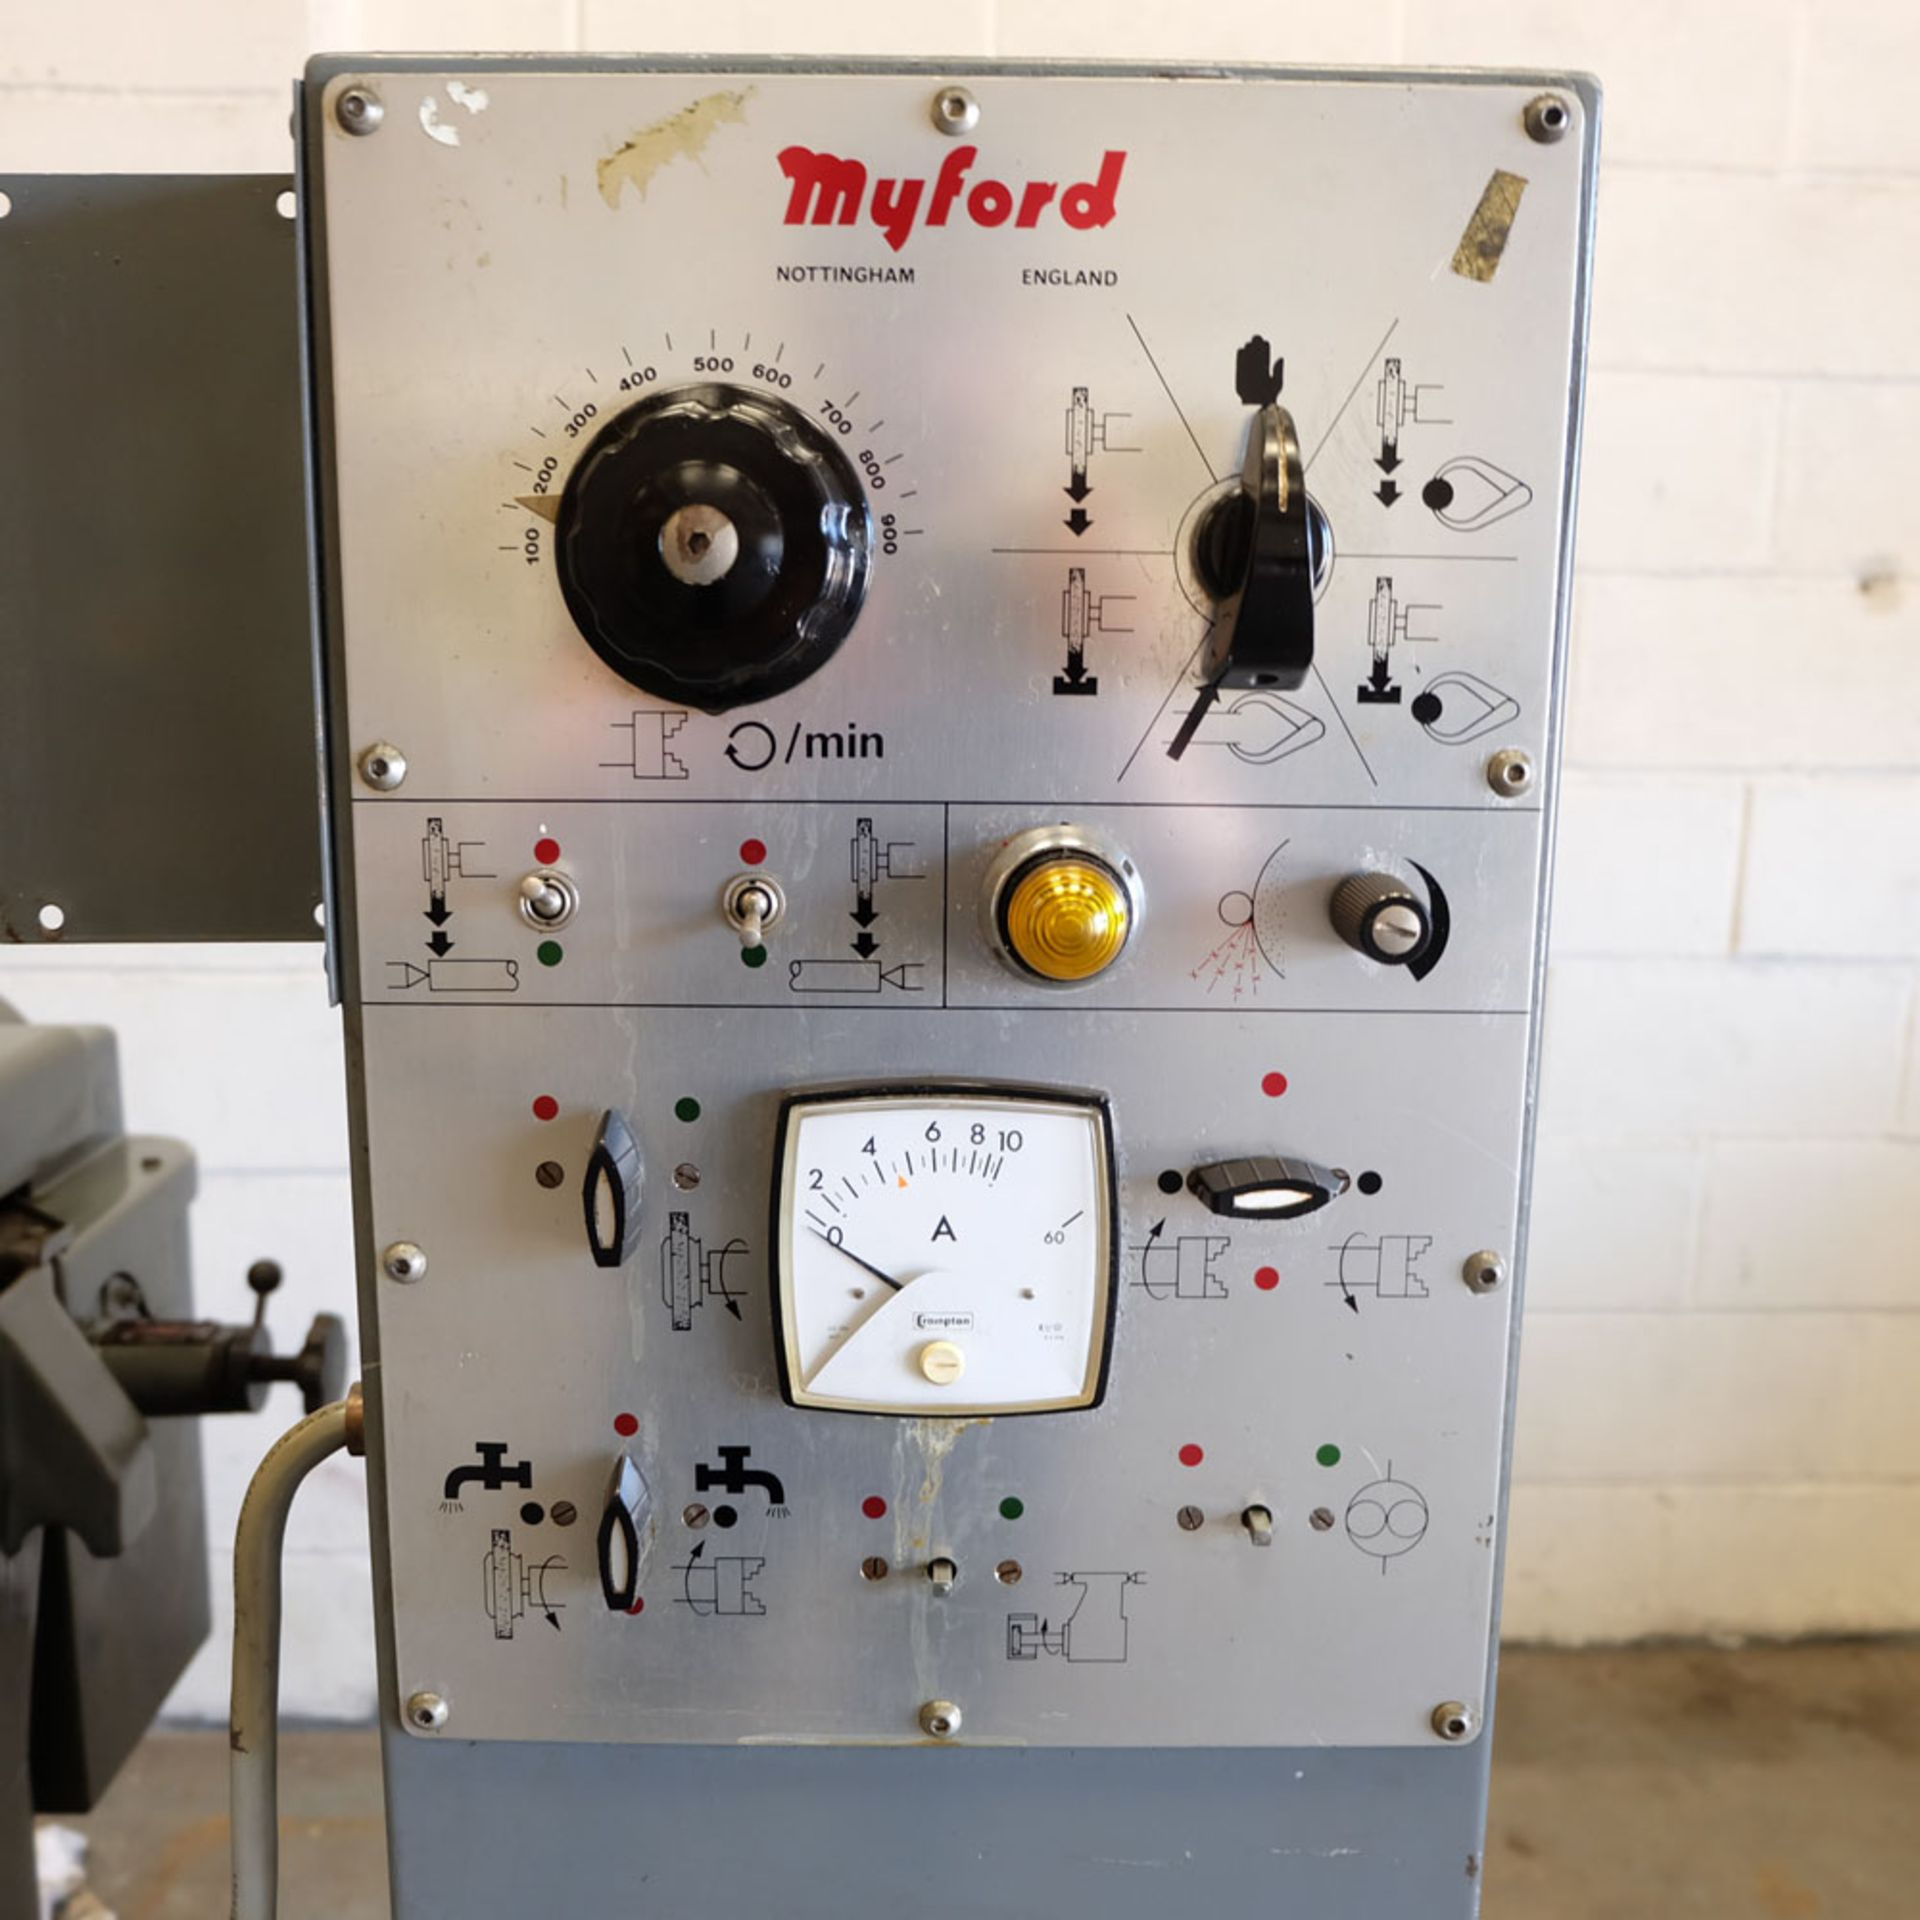 Myford Model MG12-HPT Automatic Cycle Traverse & Plunge Grinder. - Image 6 of 8